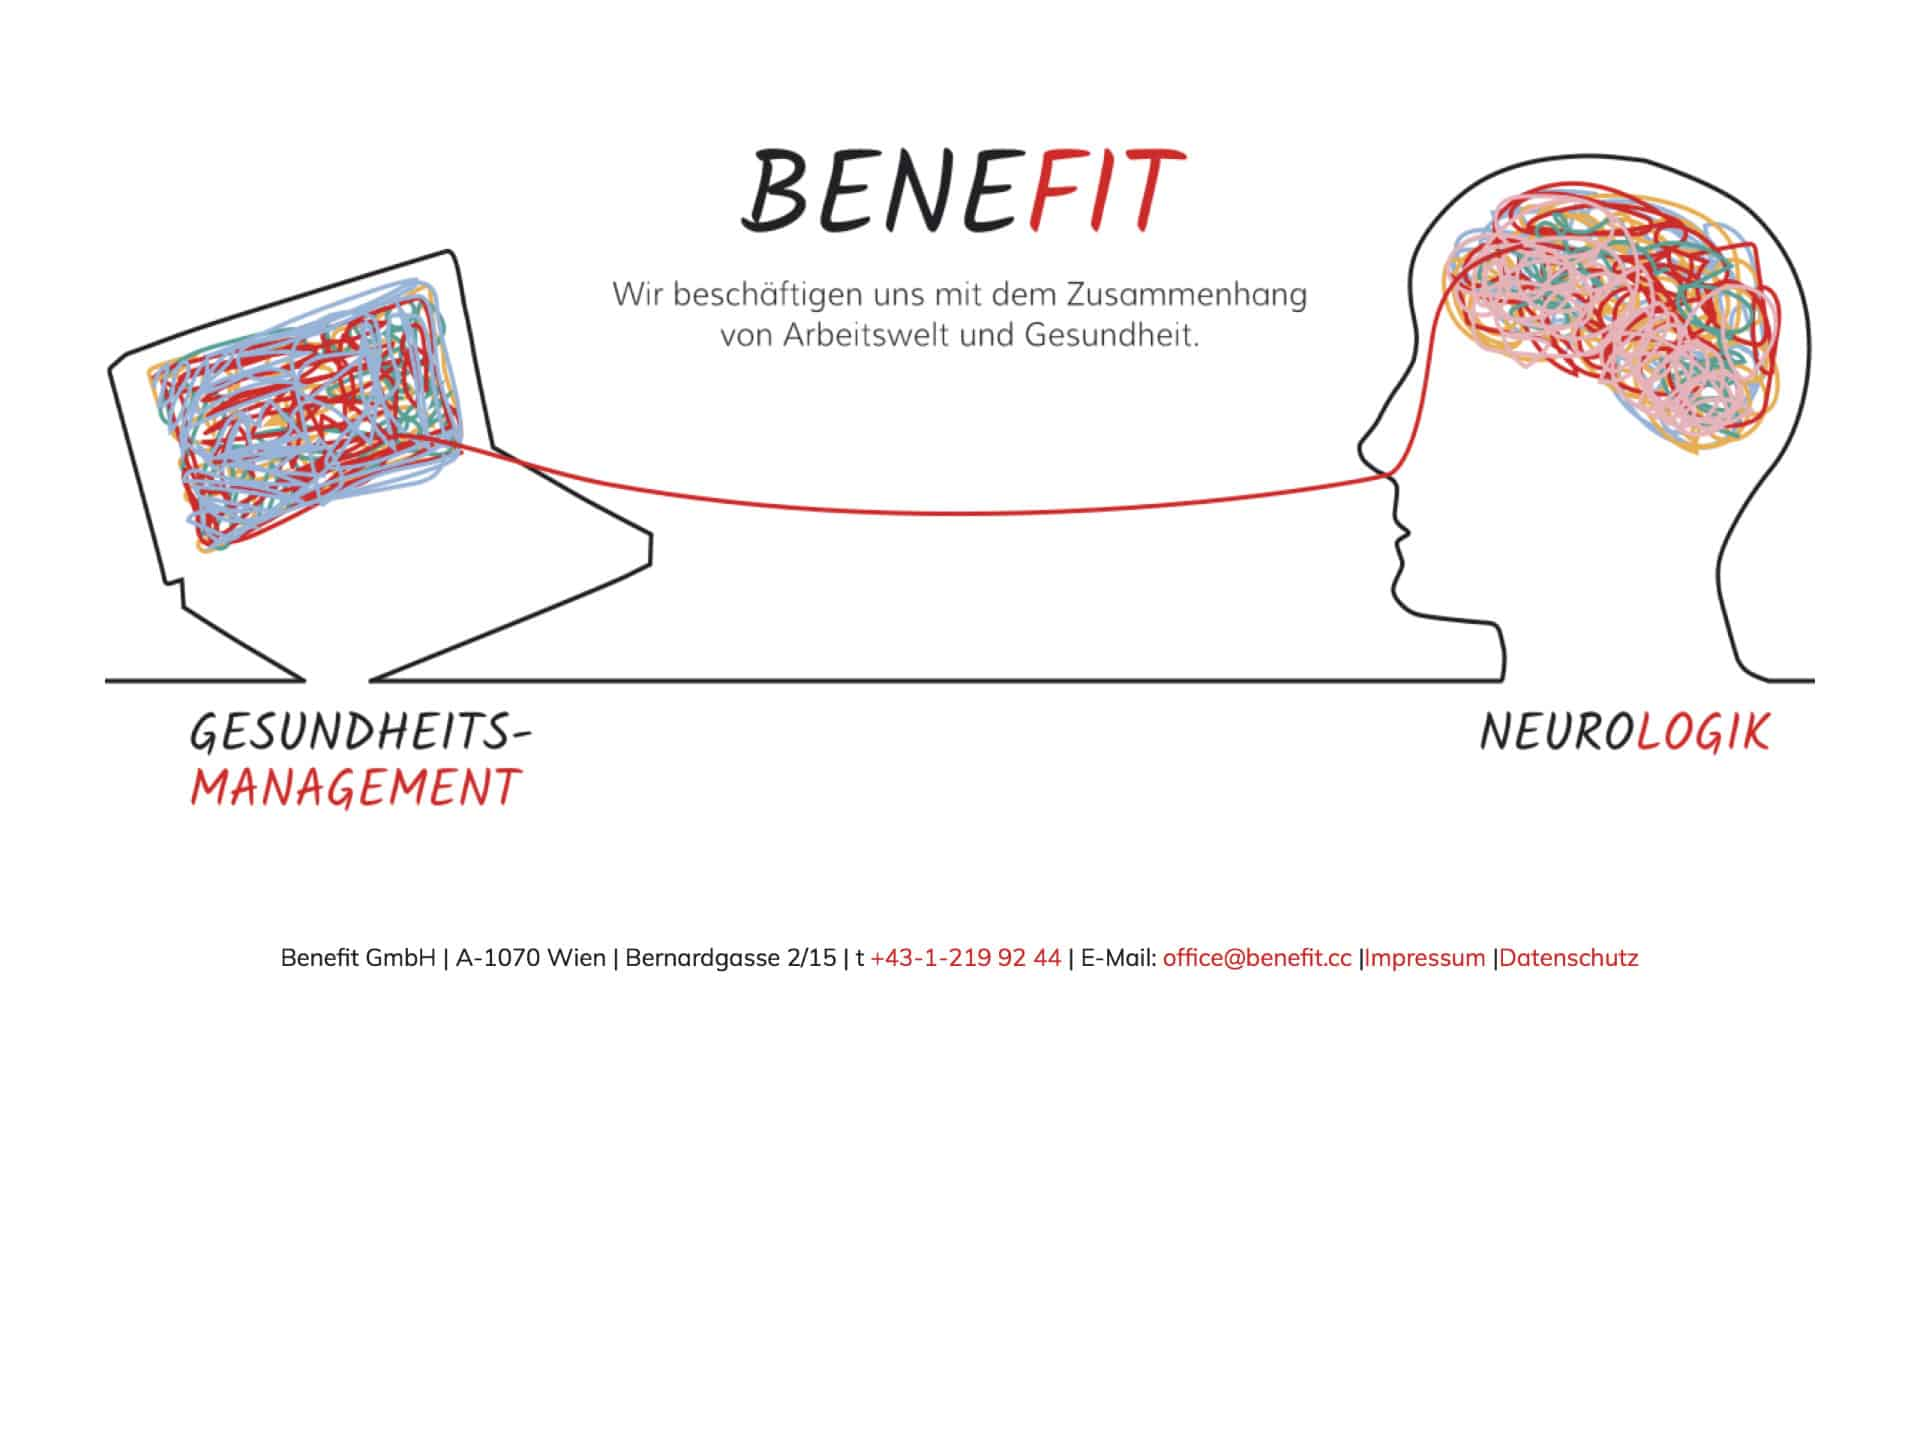 Neurologik & Benefit Webseite